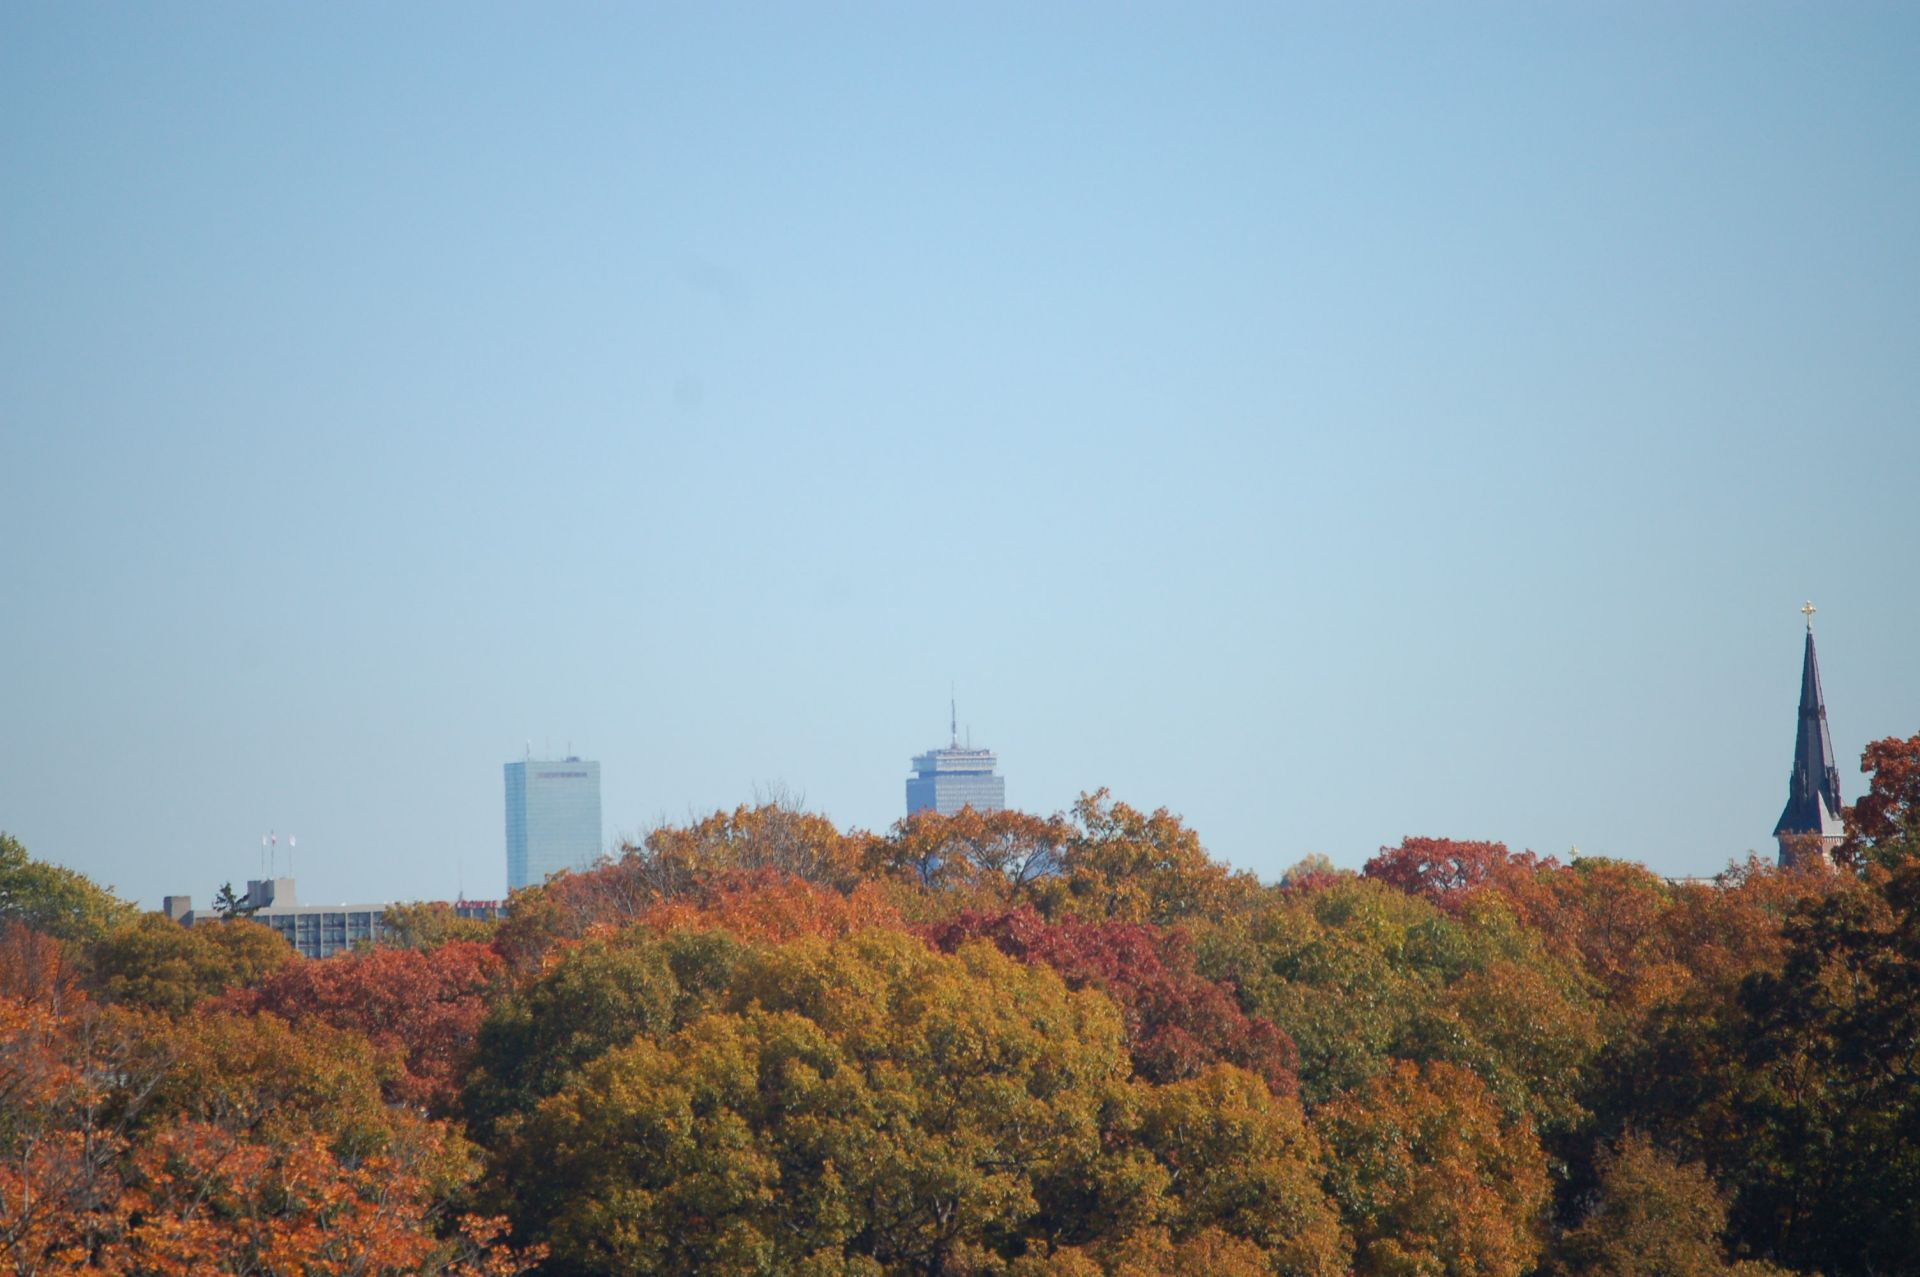 Boston Skyline (as seen from campus): Located just 15 minutes west of Boston, Fessenden students and faculty are able to take advantage of the many rich cultural experiences afforded by the city.